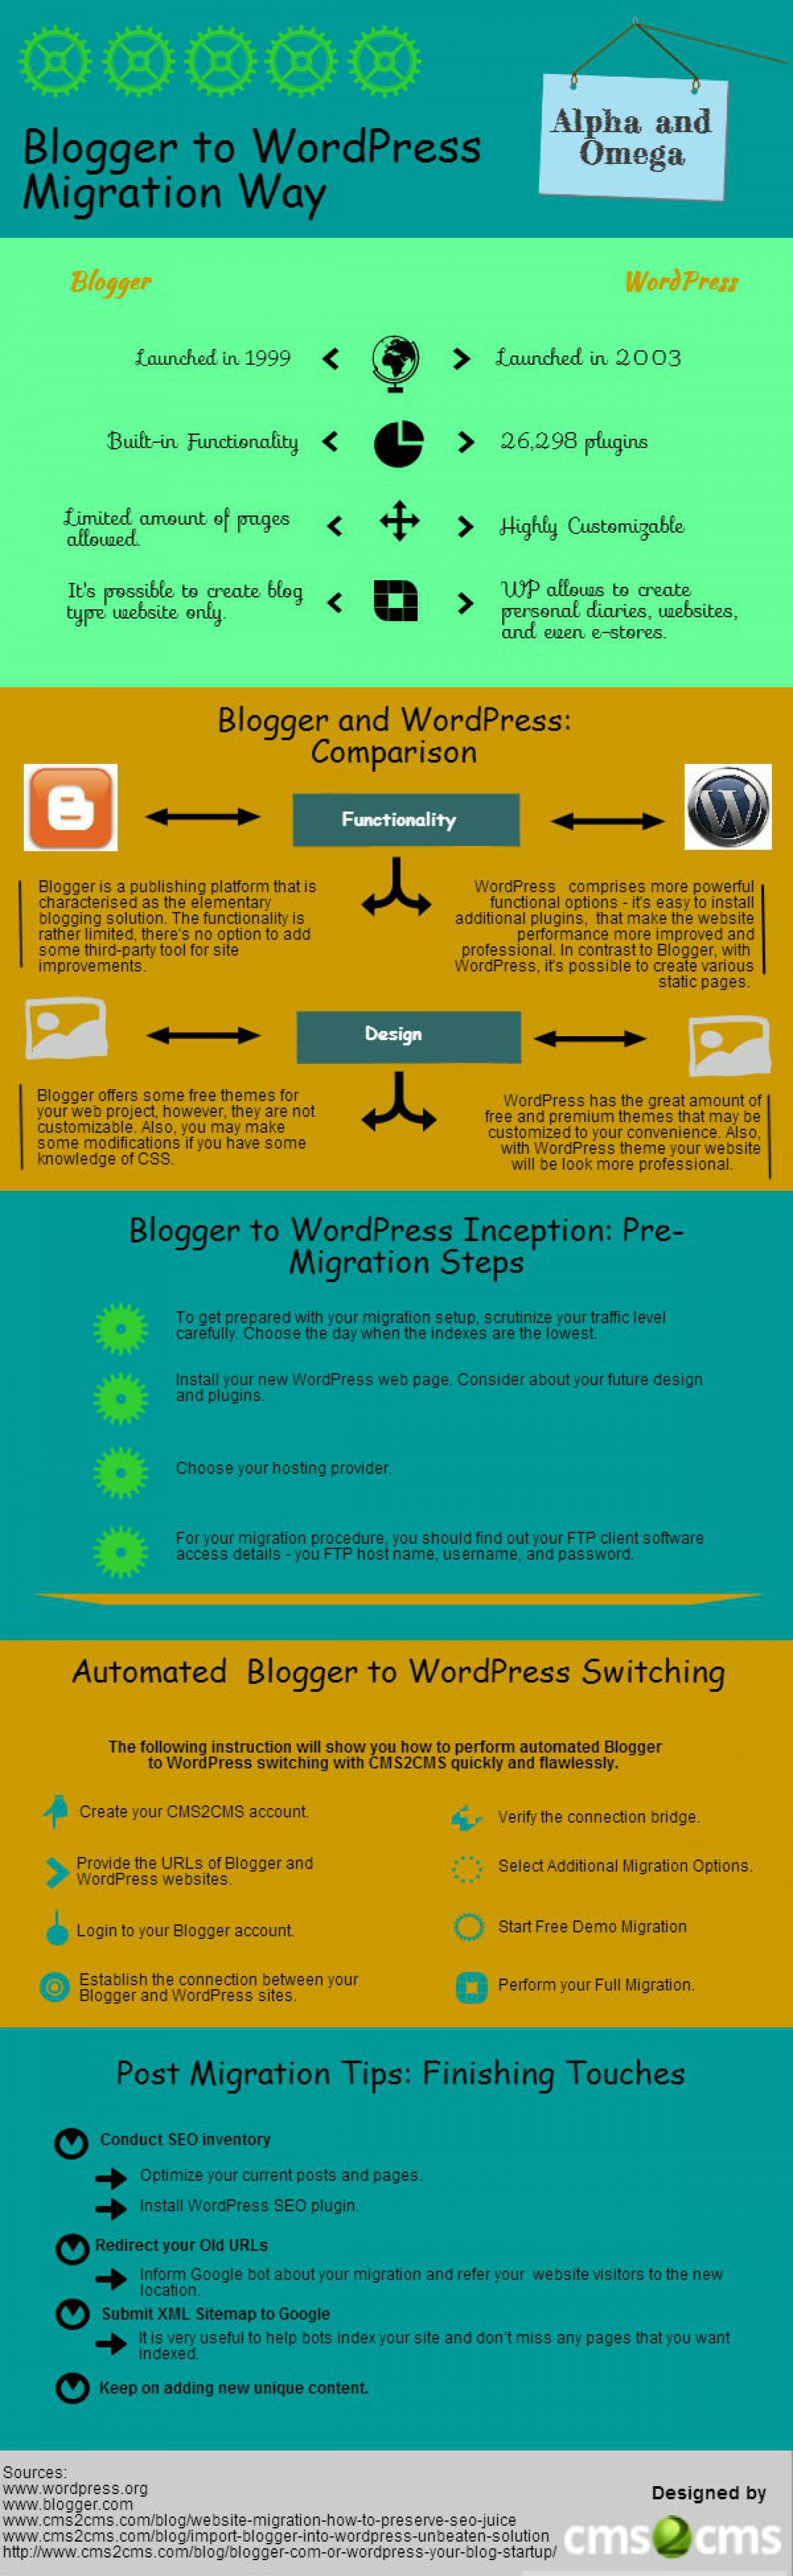 blogger-to-wordpress-migration-step-by-step-ibfographic